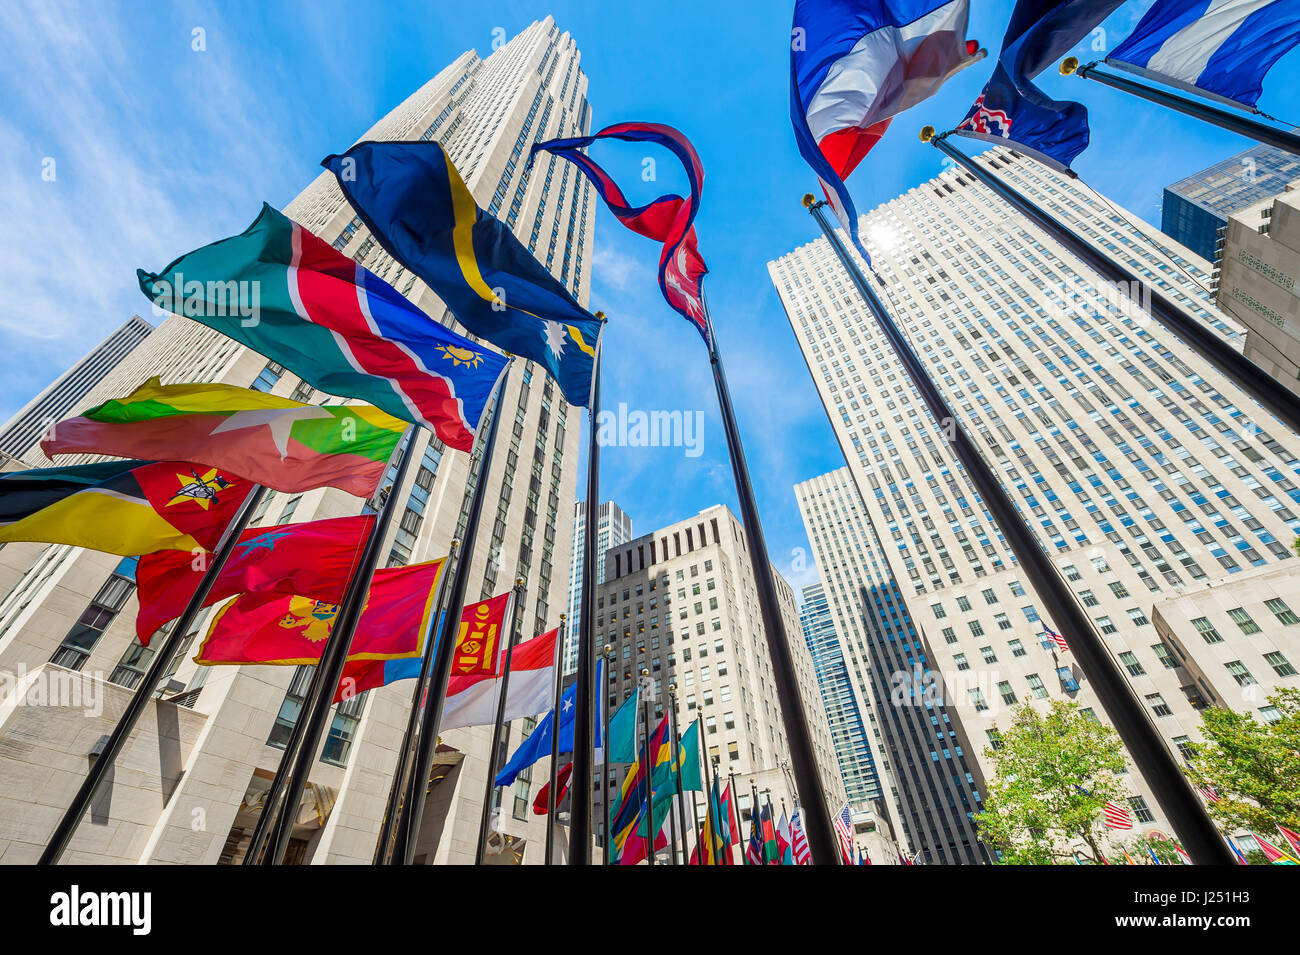 NEW YORK CITY - SEPTEMBER 2, 2016: International flags fly at the foot of the Art Deco skyscrapers at Rockefeller - Stock Image